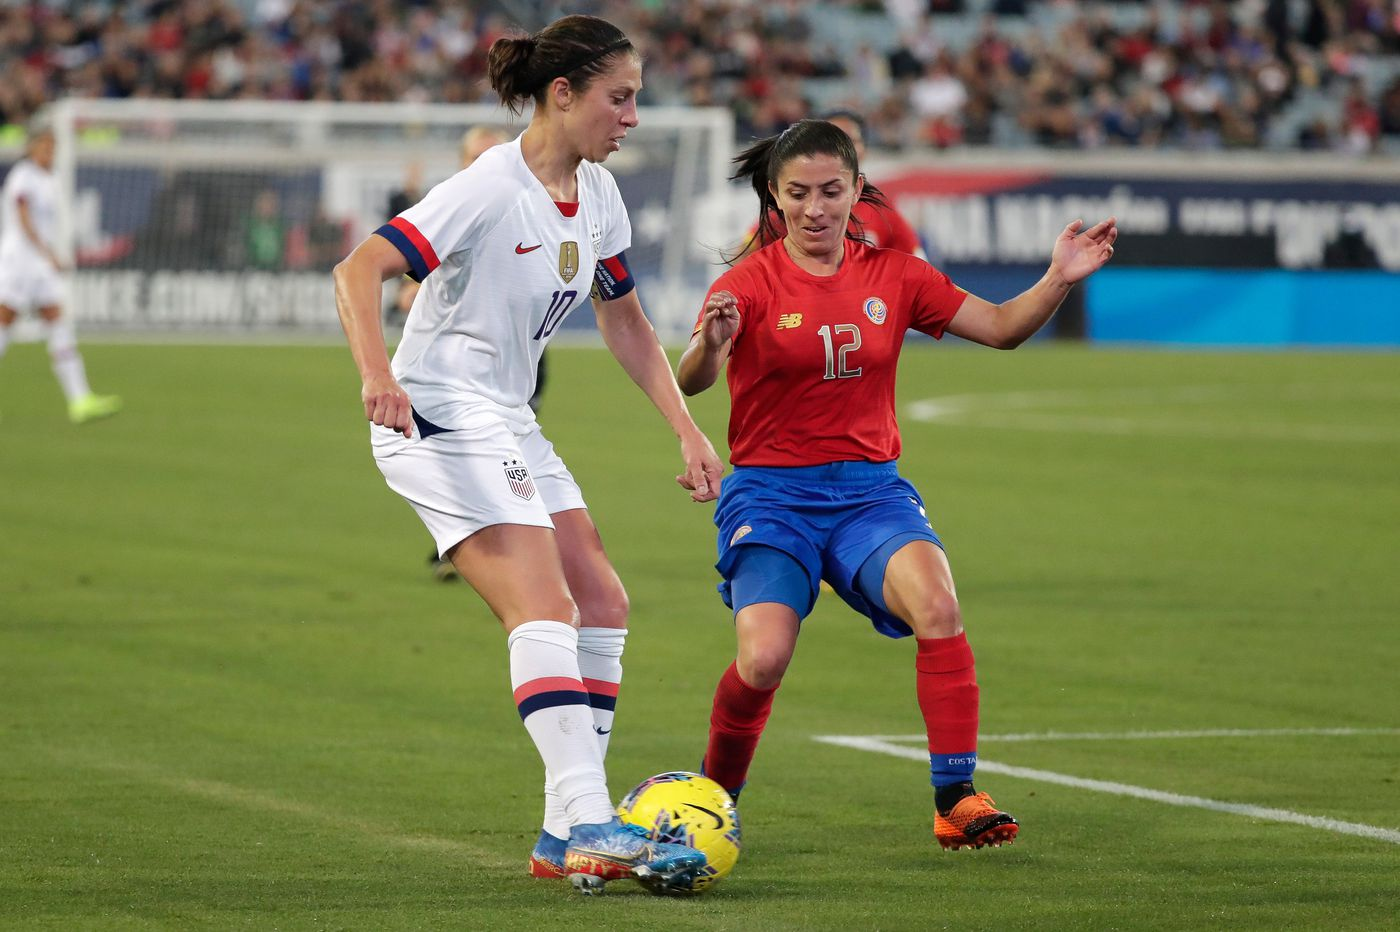 USWNT beats Costa Rica 6-0 in last game of 2019